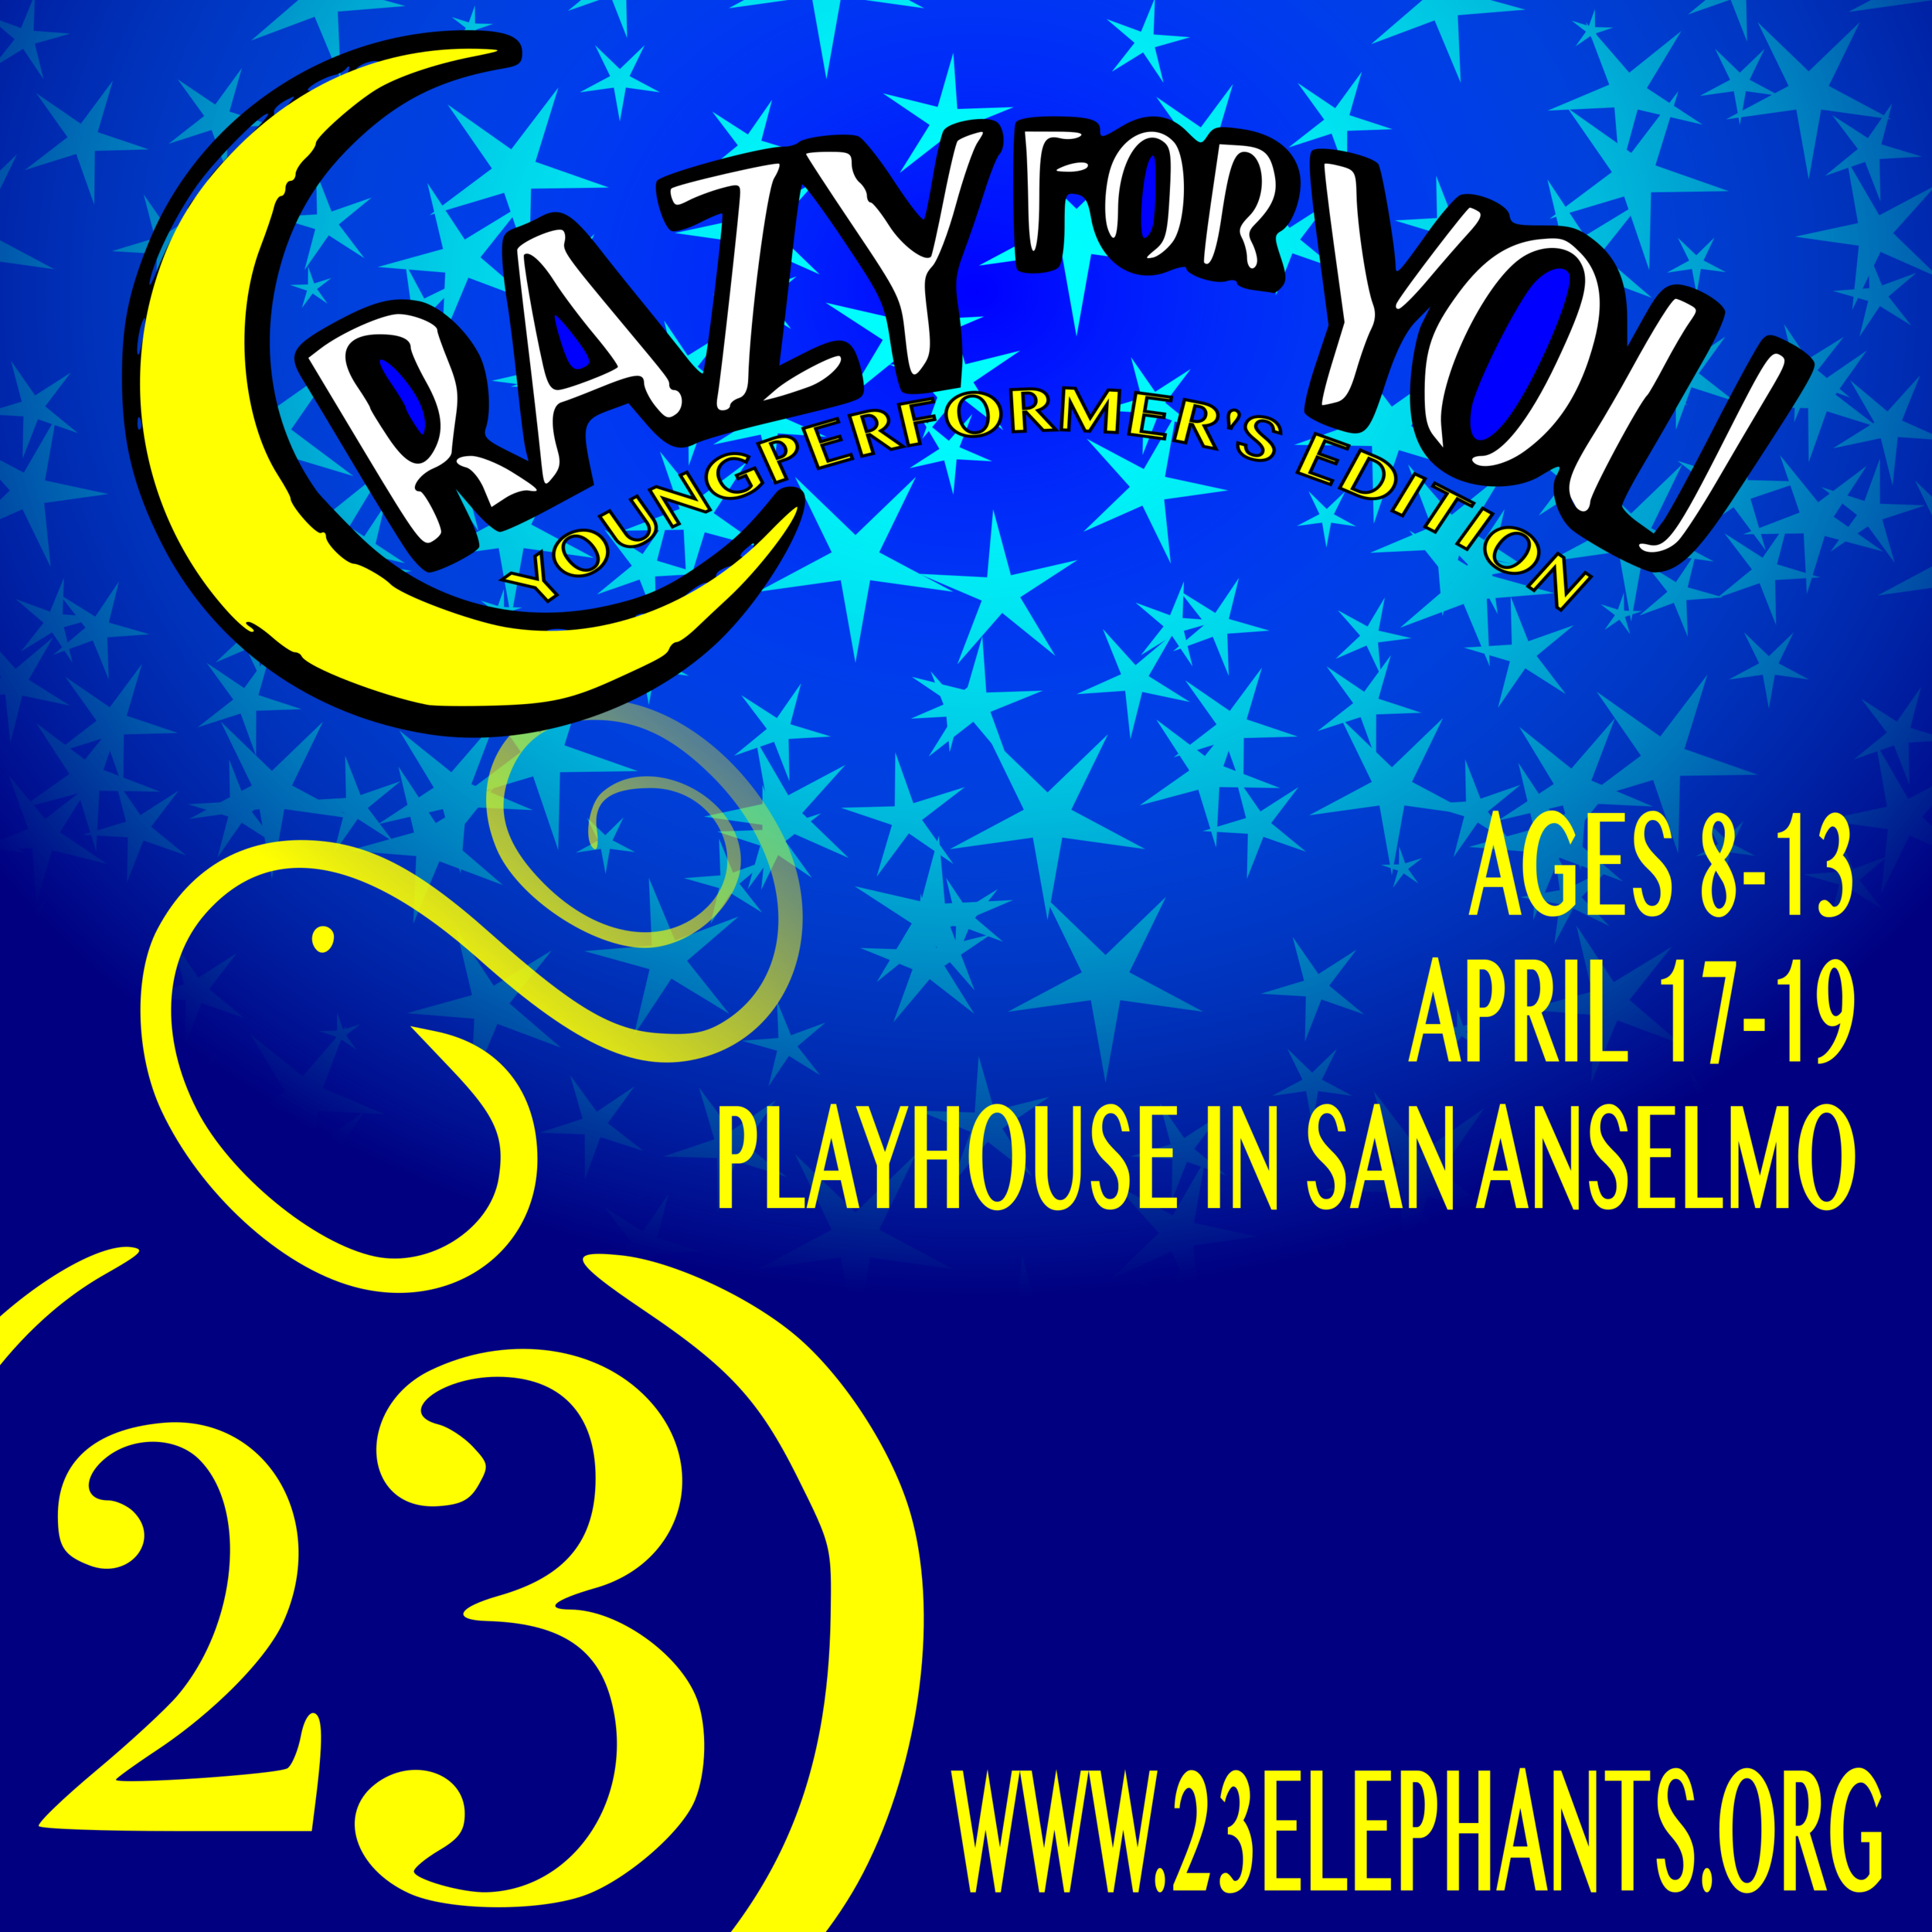 CRAZY FOR YOU SQARE LOGO.png